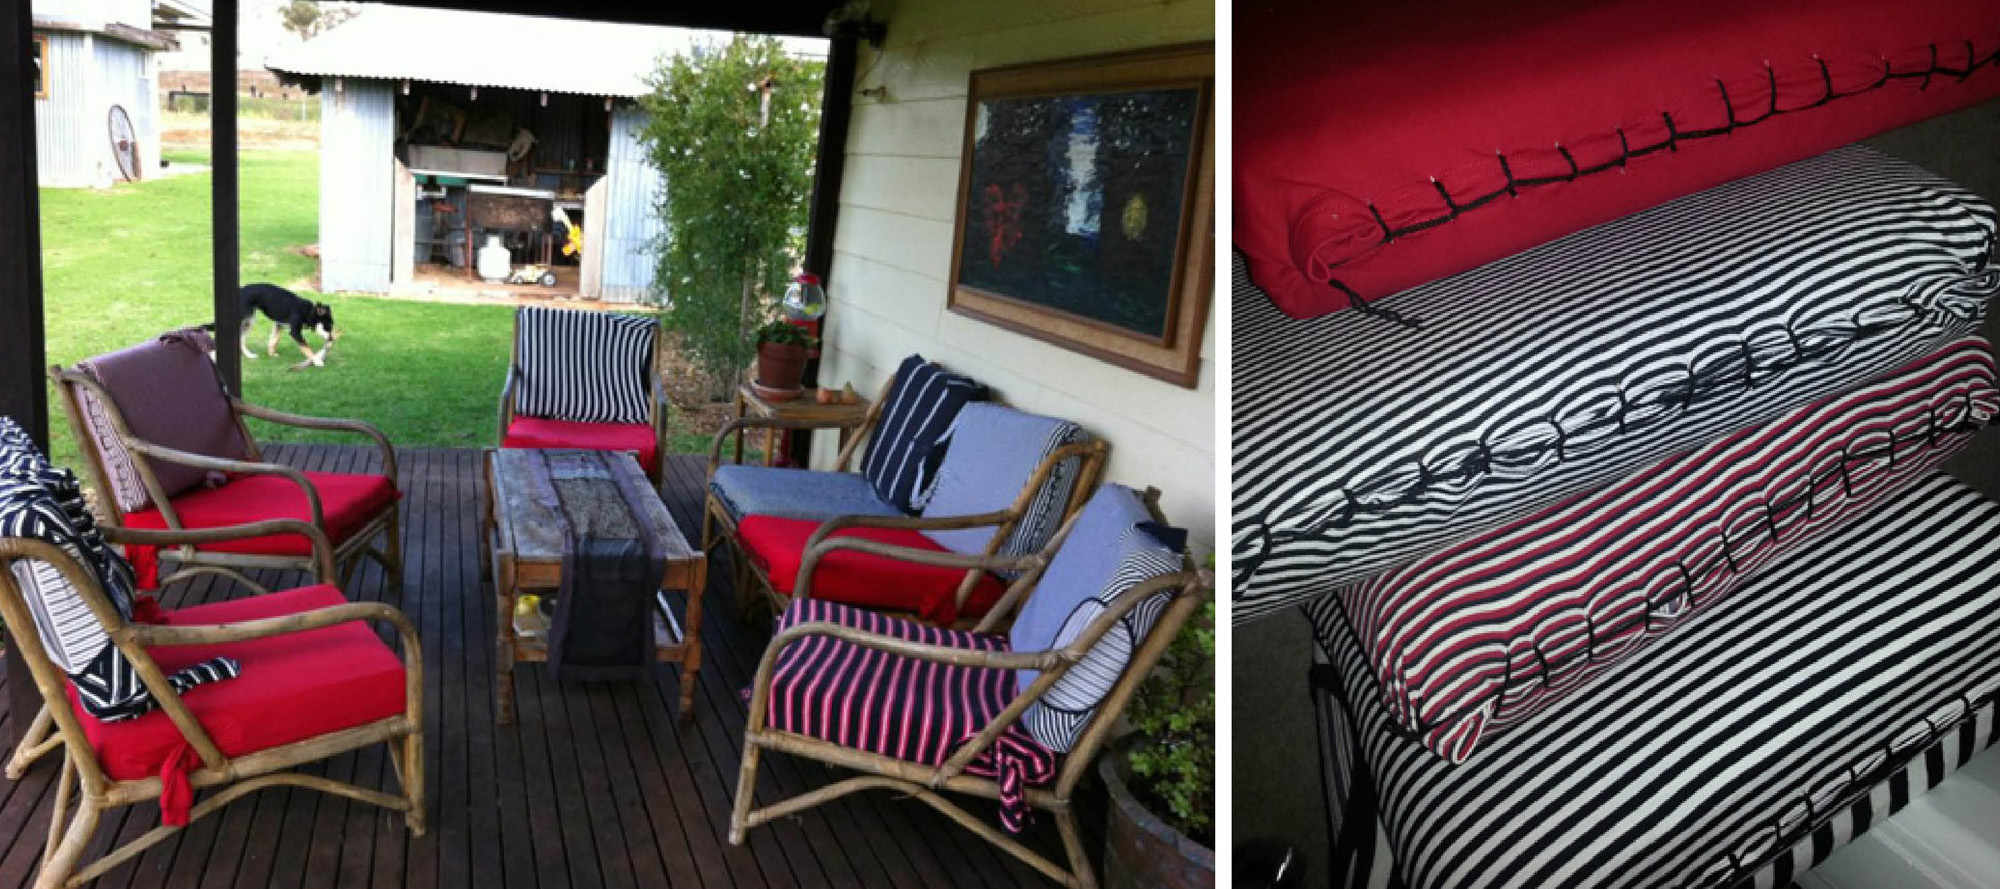 upcycled t-shirts become chair covers